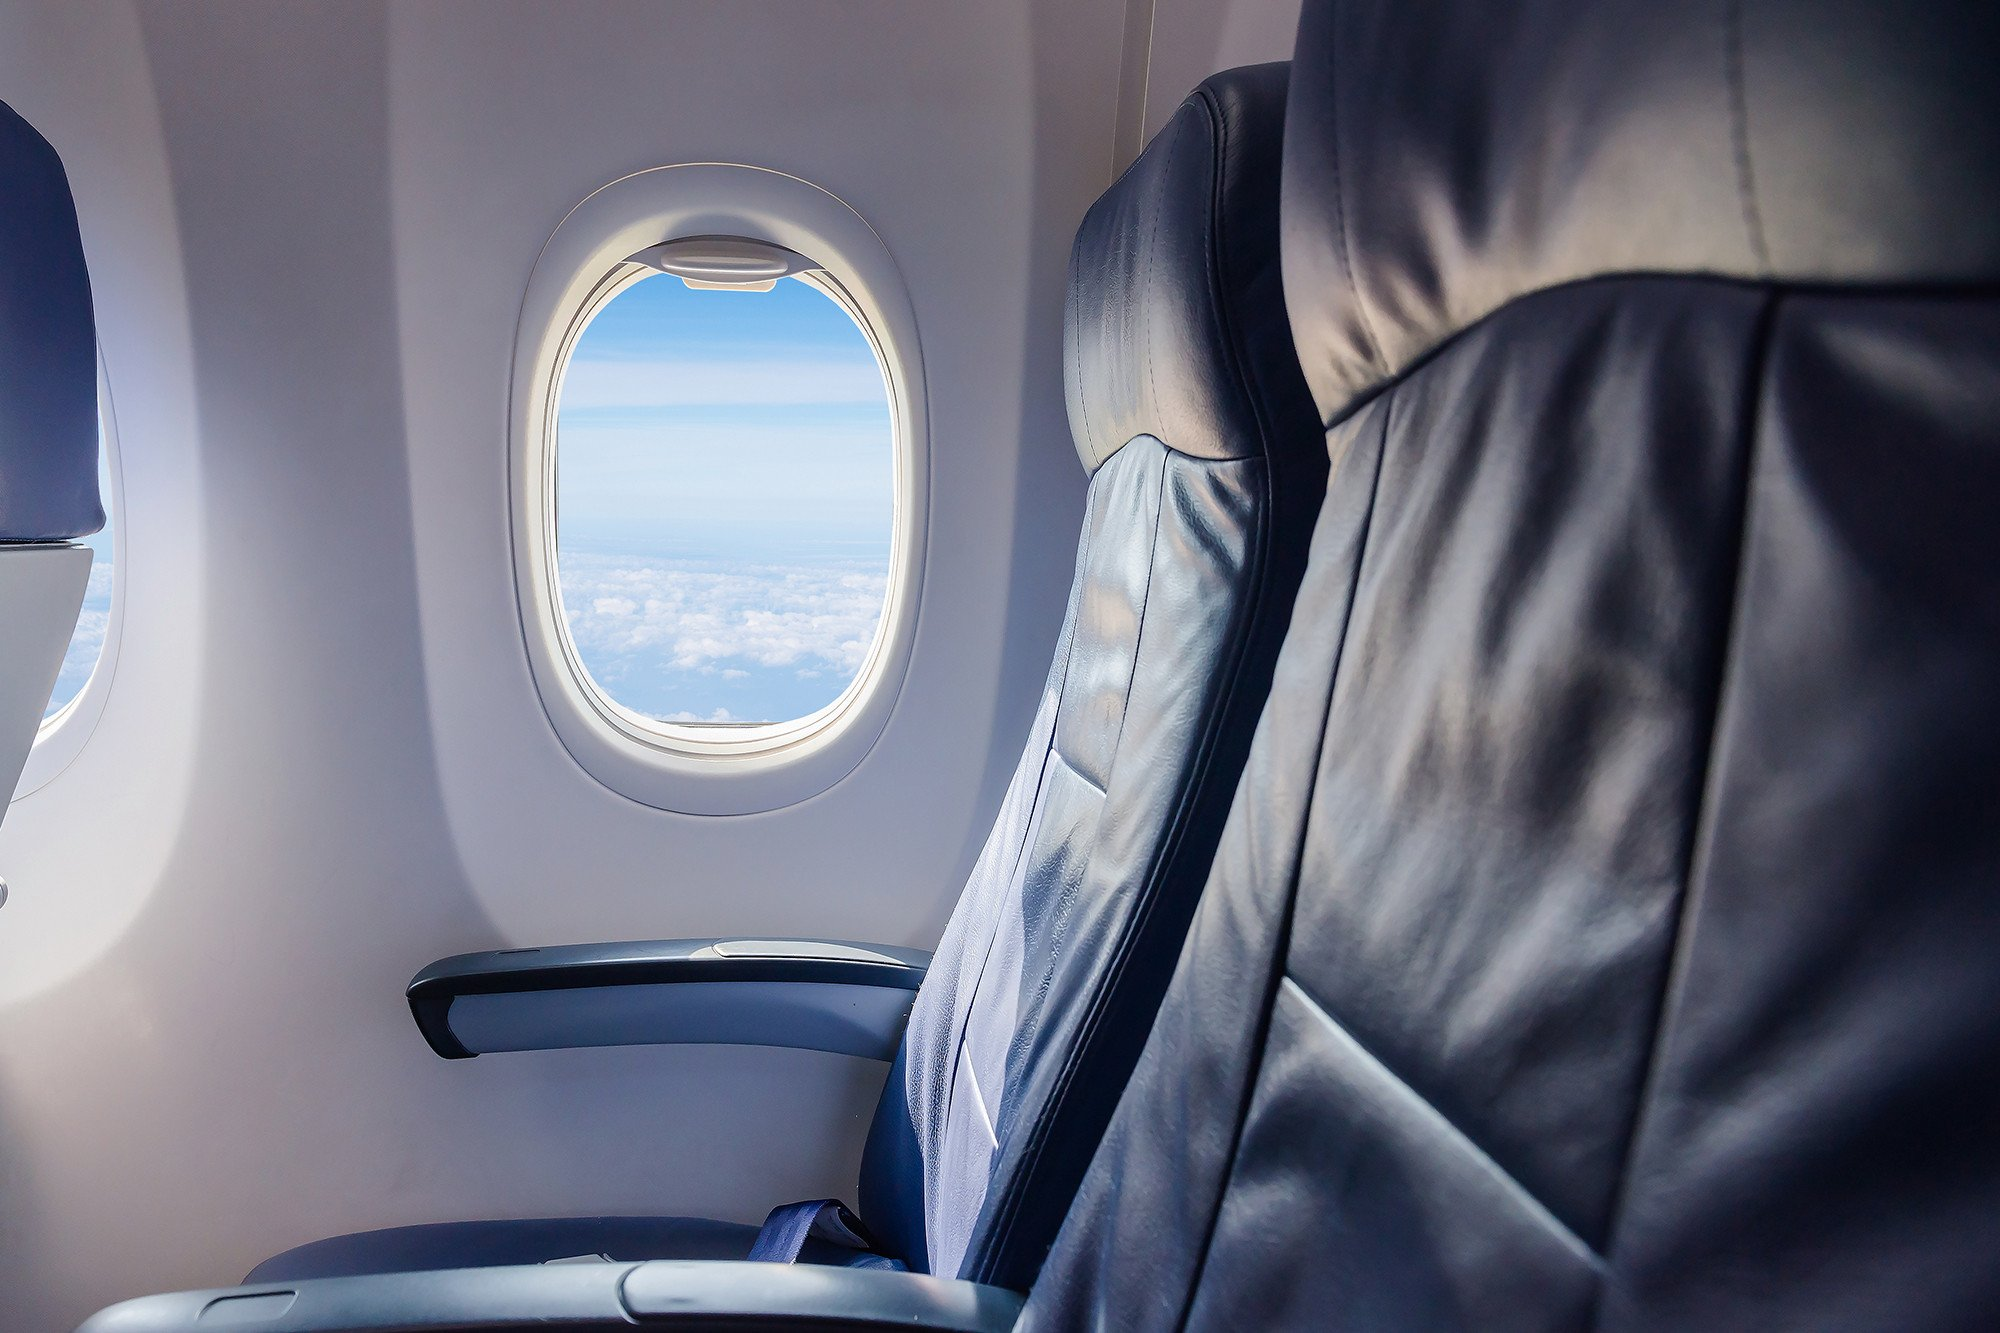 Sit in this spot on an airplane to avoid the flu while flying